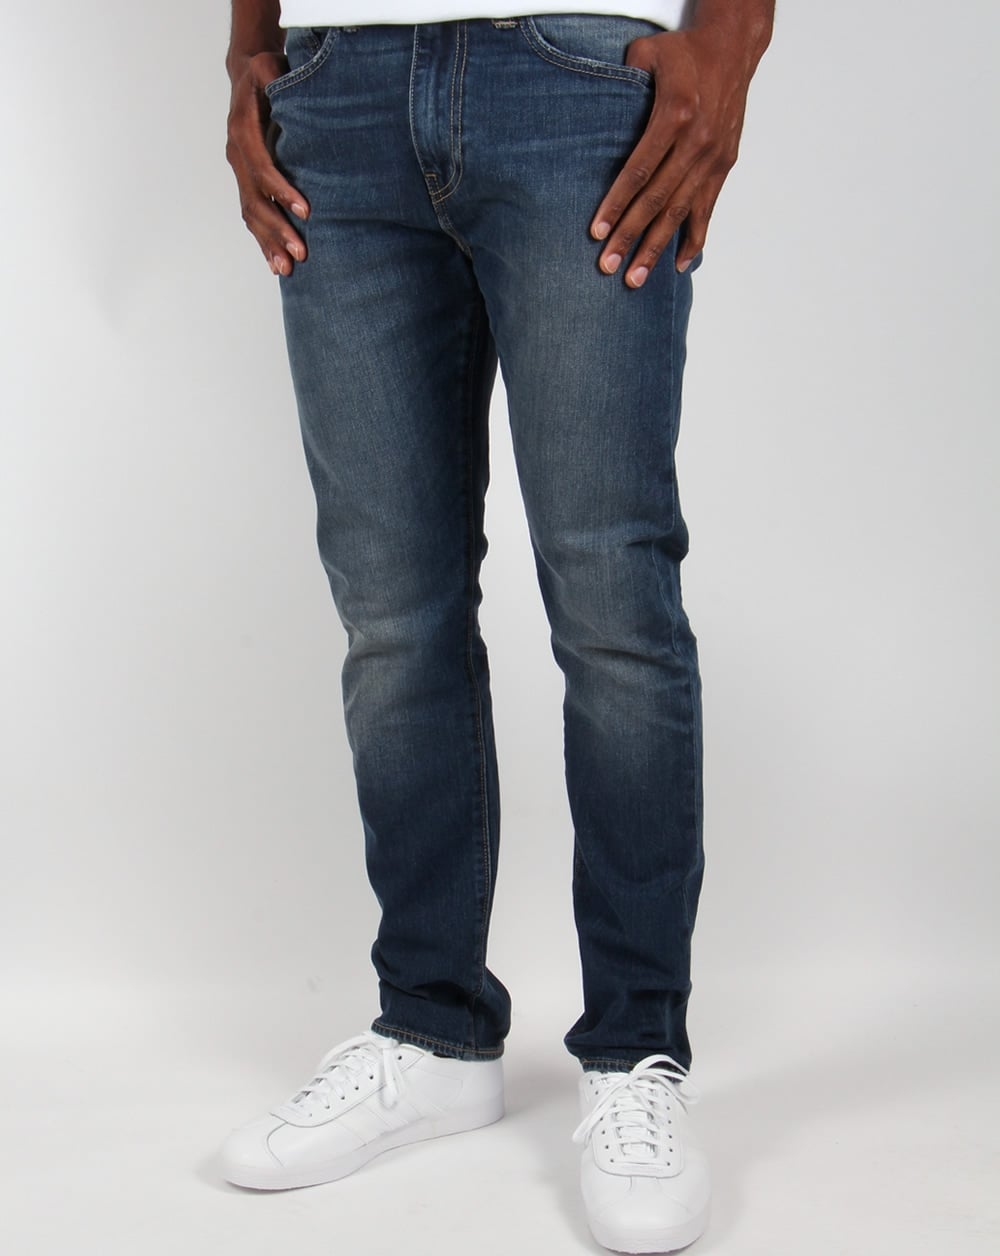 levis 510 skinny fit jeans blue canyon men 39 s denim. Black Bedroom Furniture Sets. Home Design Ideas